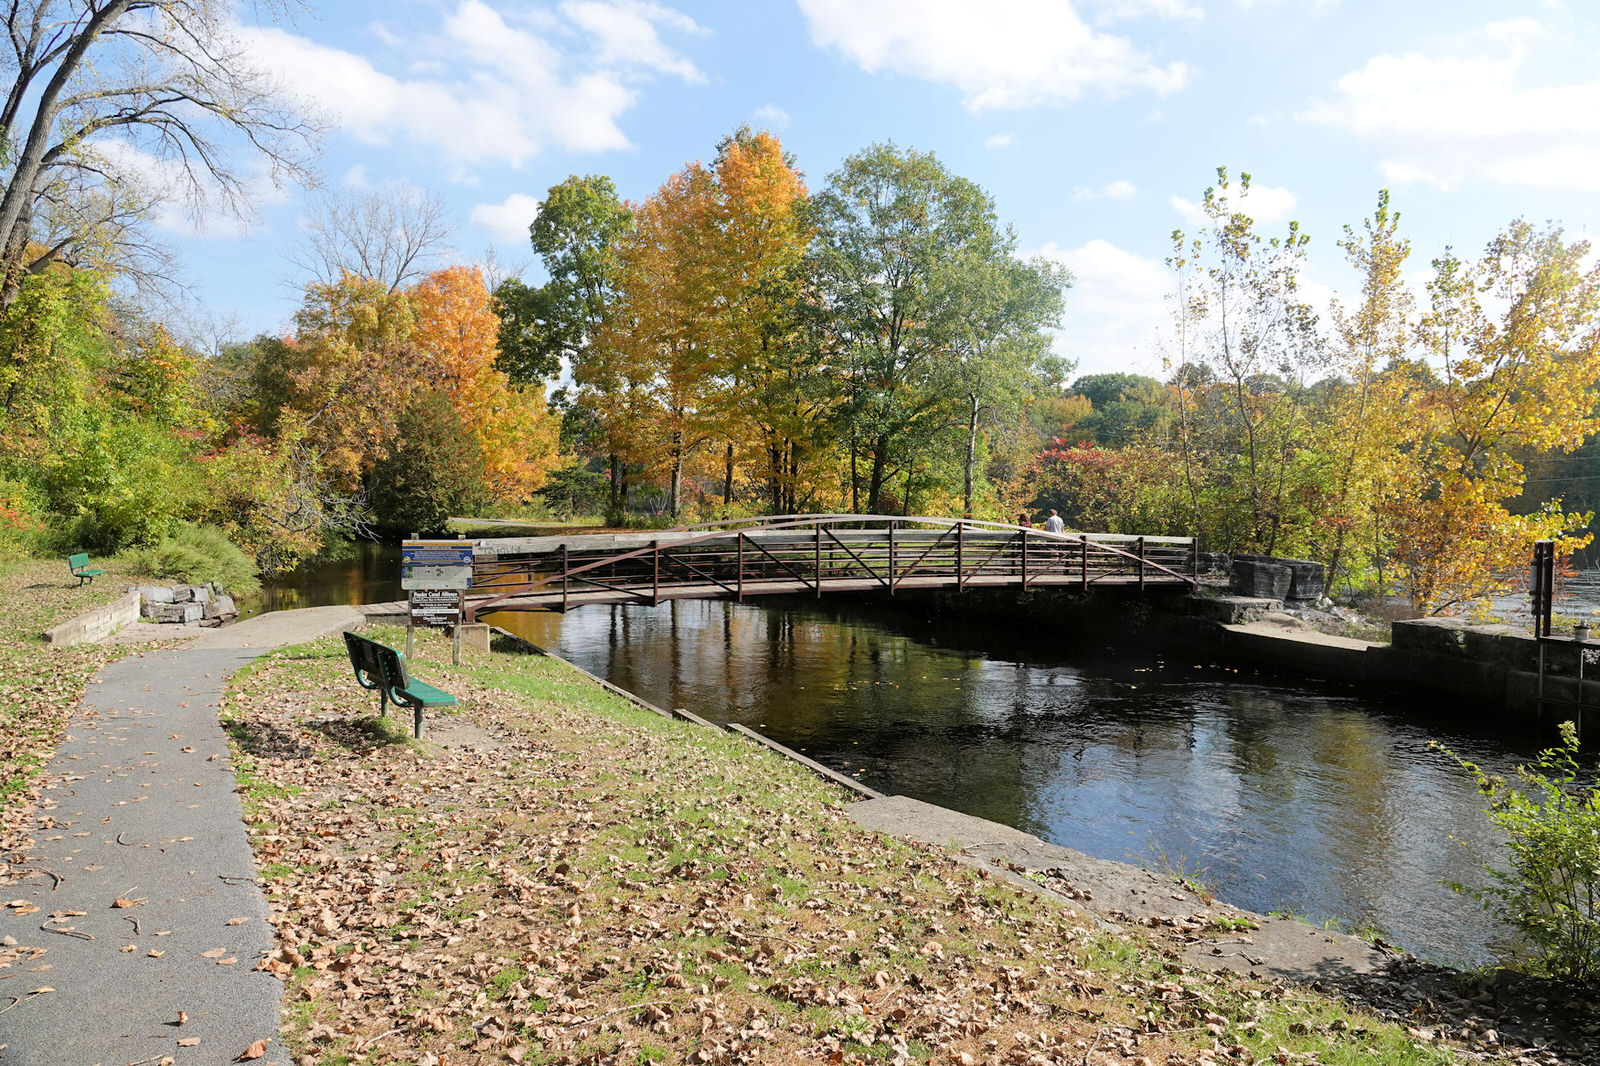 photo: Feeder Canal Towpath Trail - 10-10-2018. Photo by Jim Walla.